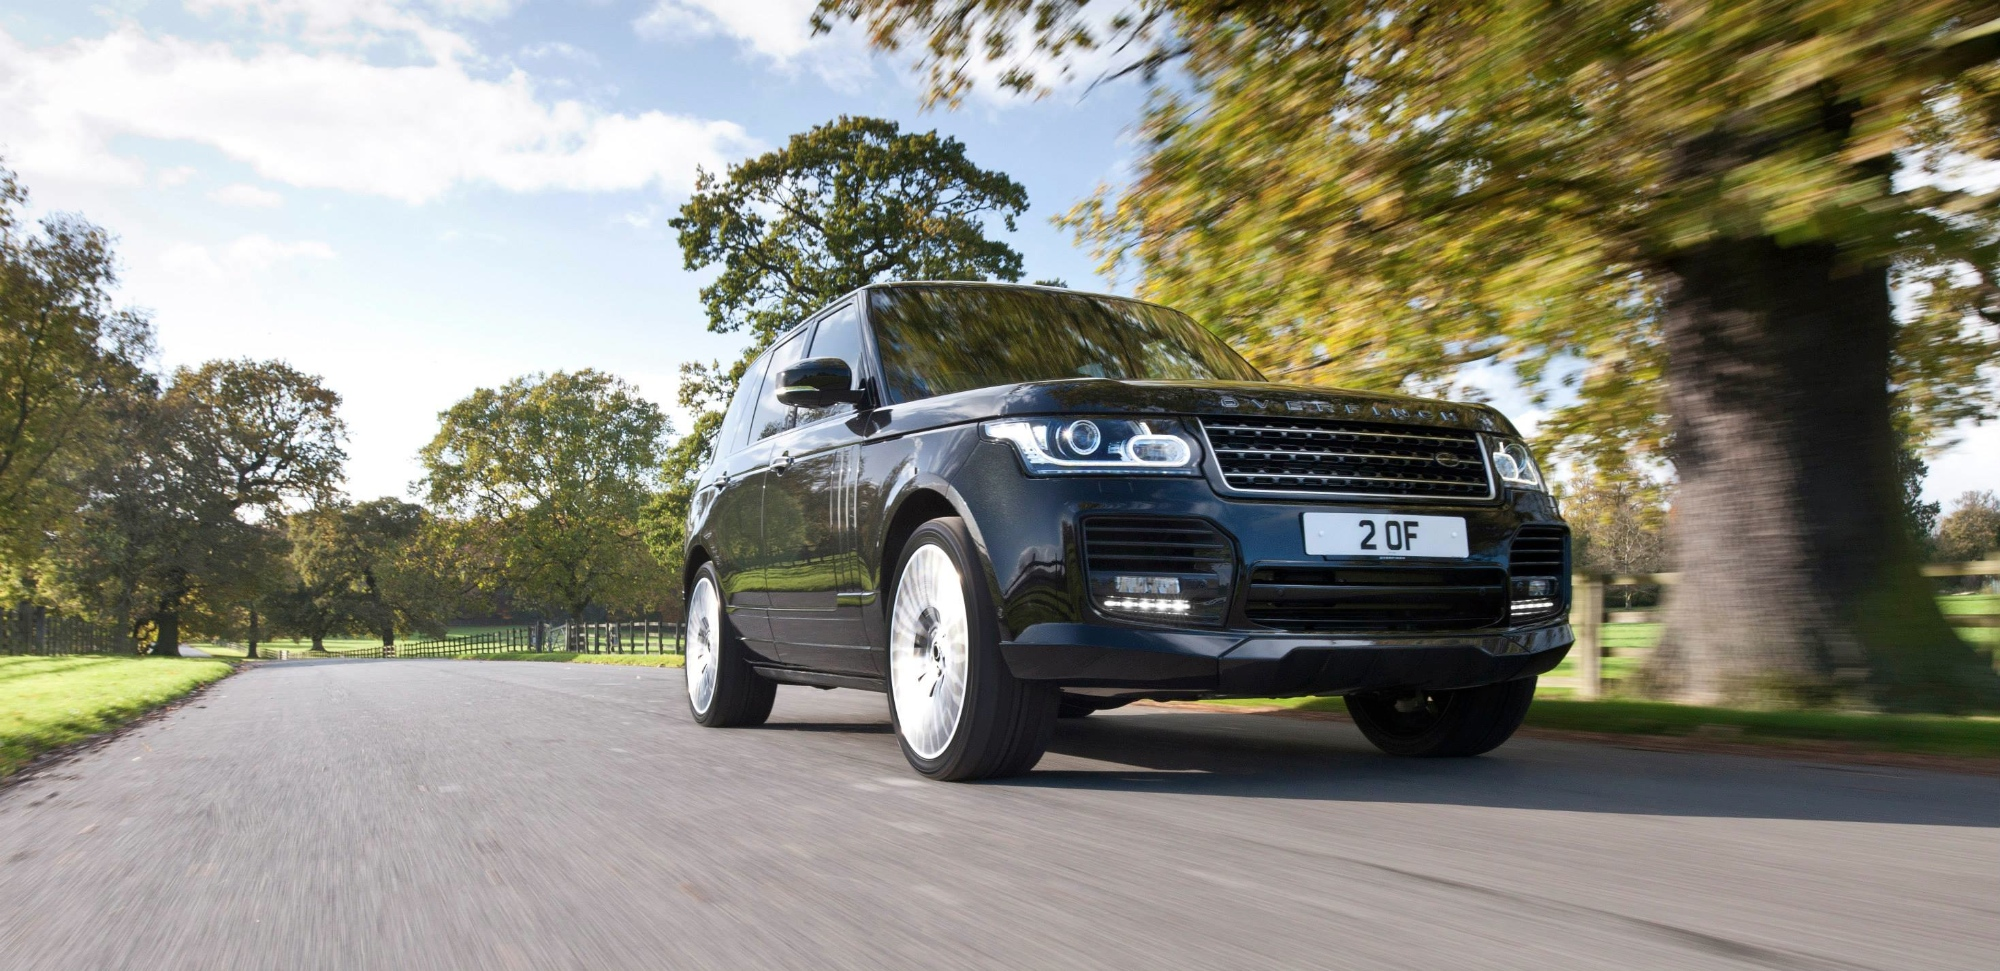 Overfinch Autoevolution Range 2014 Rover Gets Luxury Makeover 8nm0wN